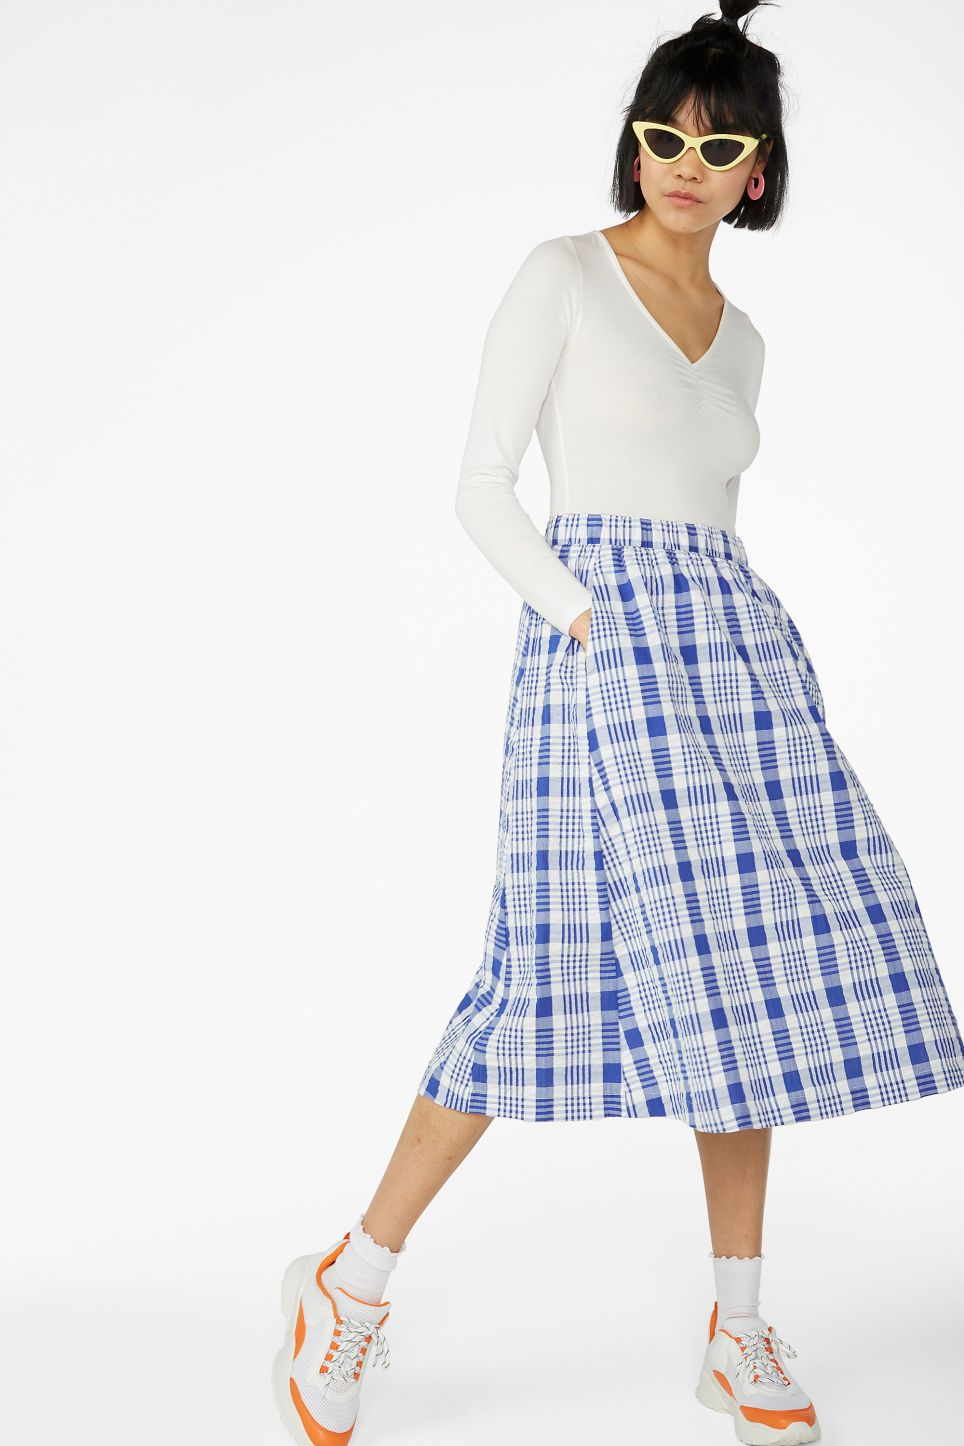 5d004ecc11 Flowy midi skirt - White and blue checks - Skirts - Monki A below-the-knee  length midi skirt in a checked fabric in a wrinkly laid-back style,  featuring an ...